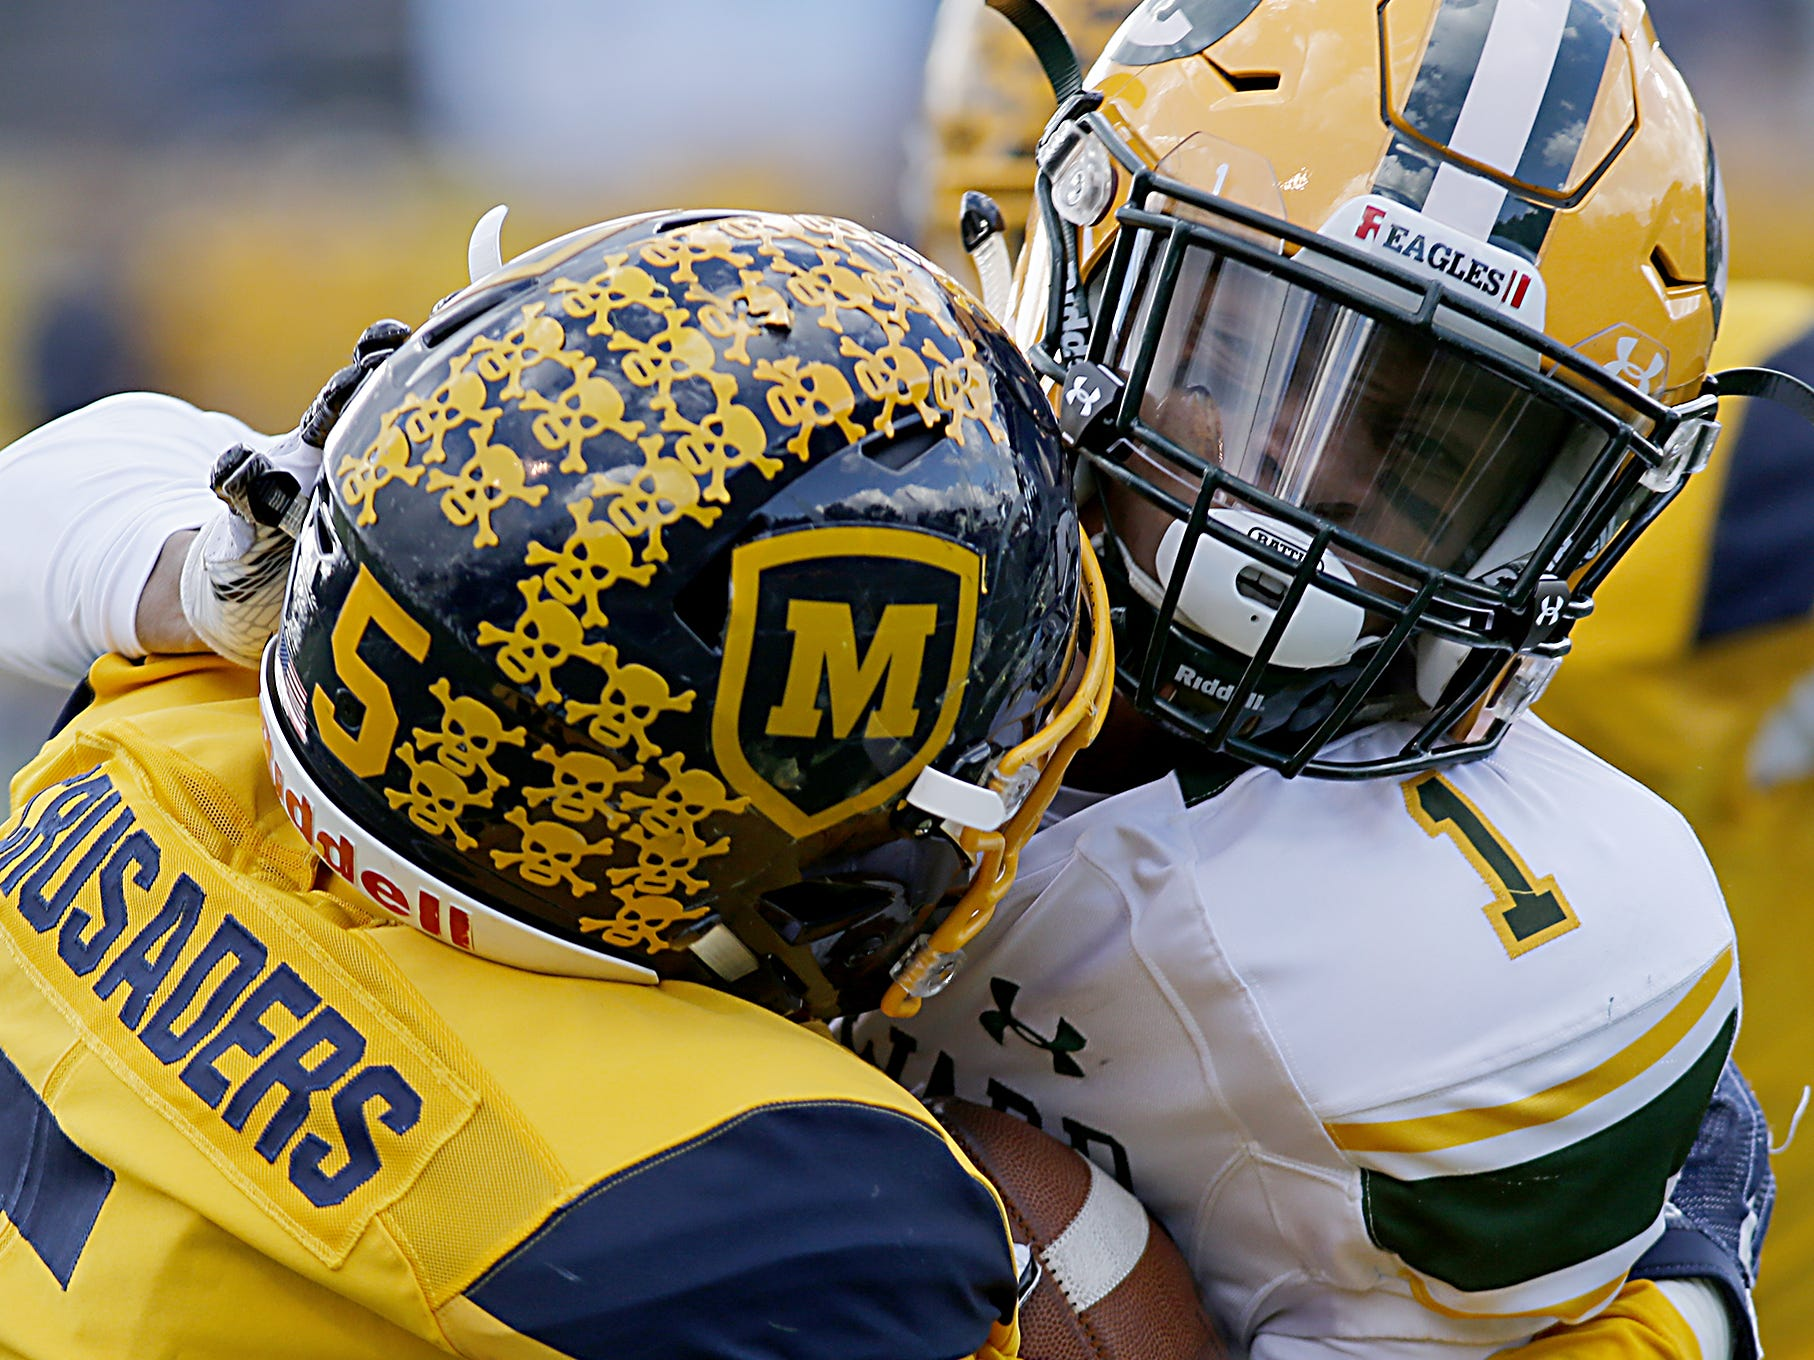 Moeller defensive back B.J. Hendrix, Jr., wraps up Lakewood St. Edward ball carrier Quintel Kent during their game at Lockland Saturday, Oct. 20, 2018.